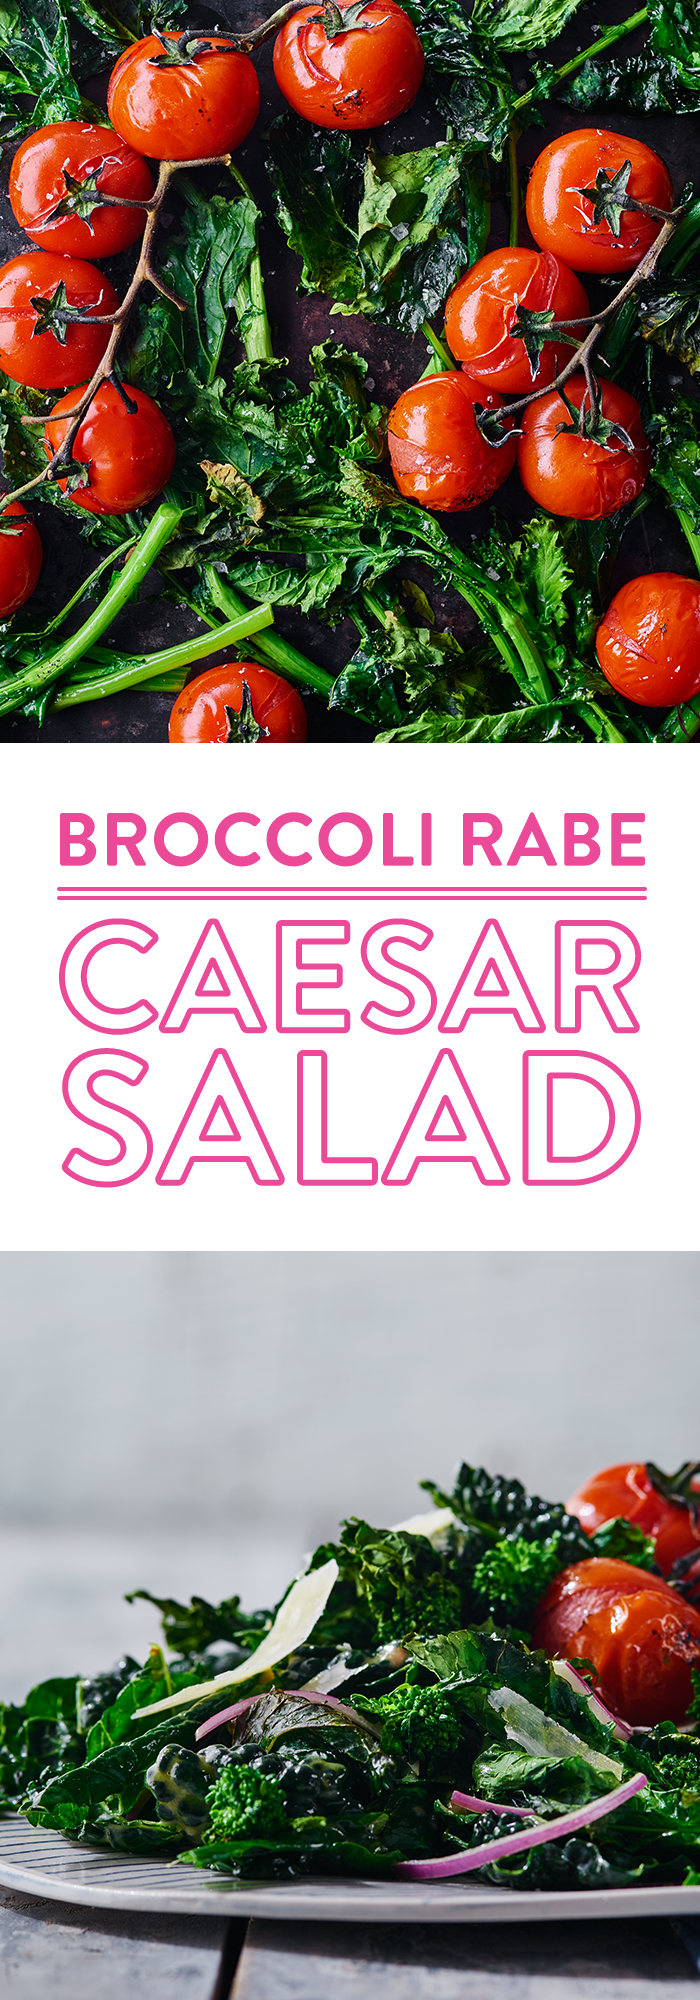 Broccoli Rabe Caesar Salad